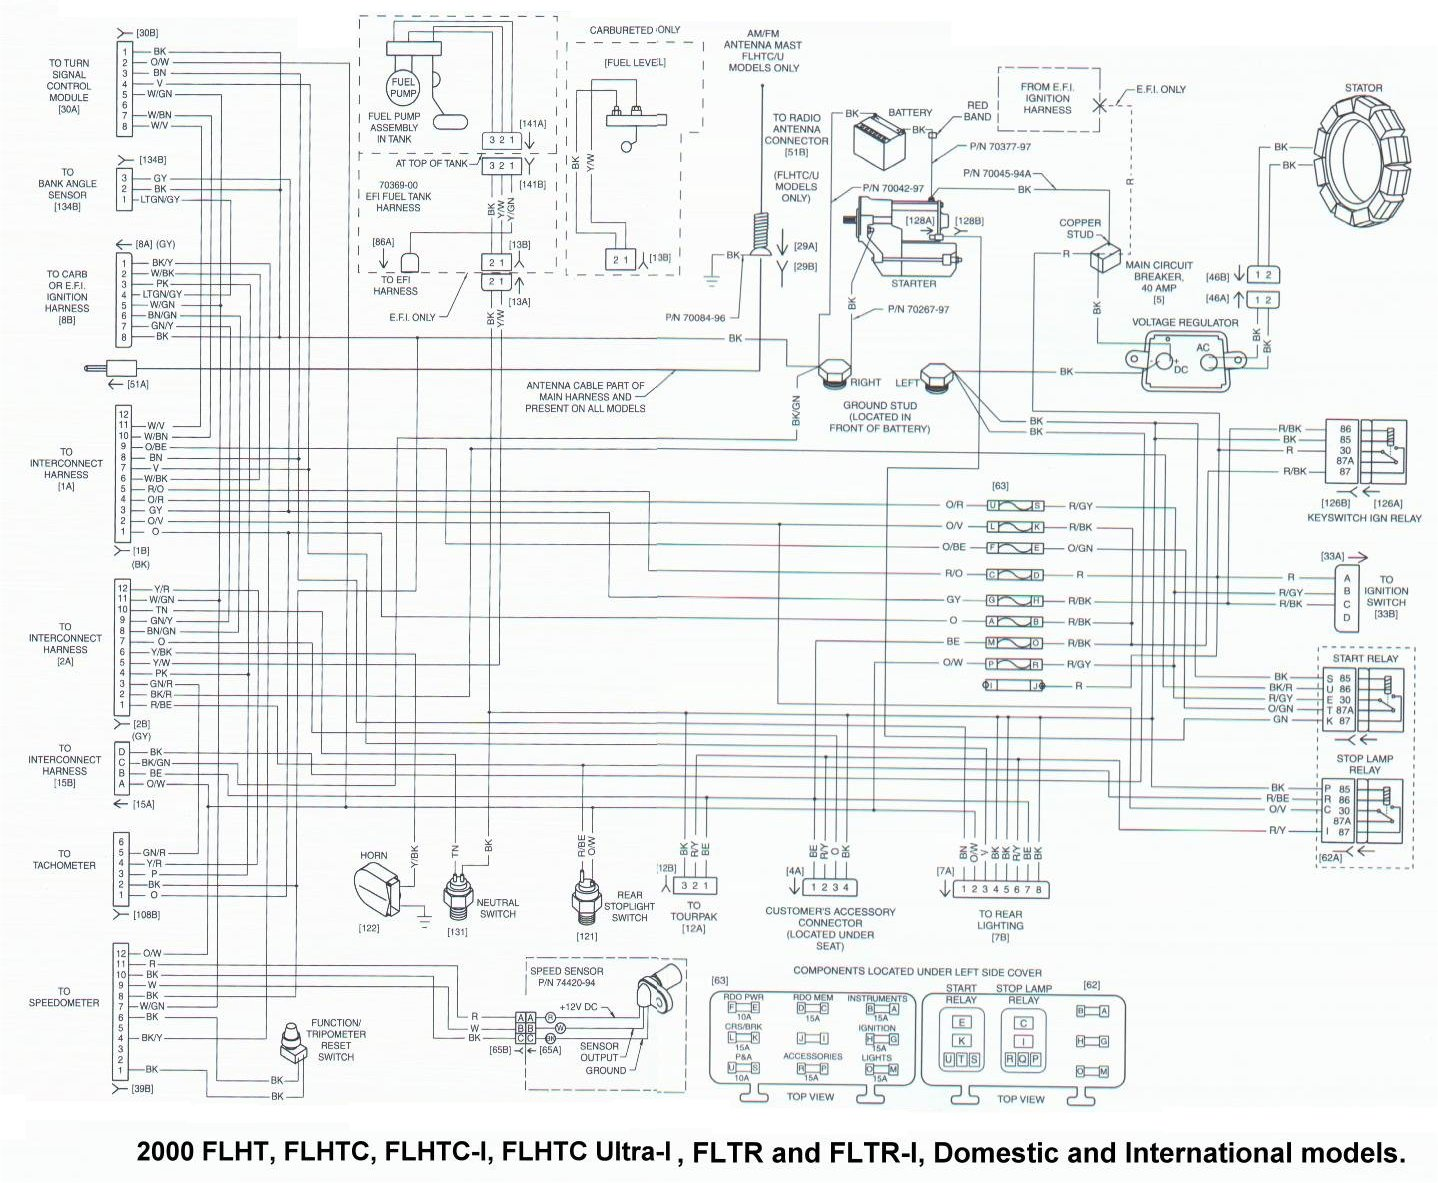 Sportster Badlands Wiring Diagram in addition Harley Davidson Wiring Diagrams And Schematics Pertaining To Harley Davidson Wiring Diagram as well Harley Davidson Wiring Diagram Fresh Harley Wiring Diagram Fatboy Harley Davidson Charging System Diagram Wiring Diagram Of Harley Davidson Wiring Diagram besides  likewise Xlxlch. on 2000 harley softail wiring diagram